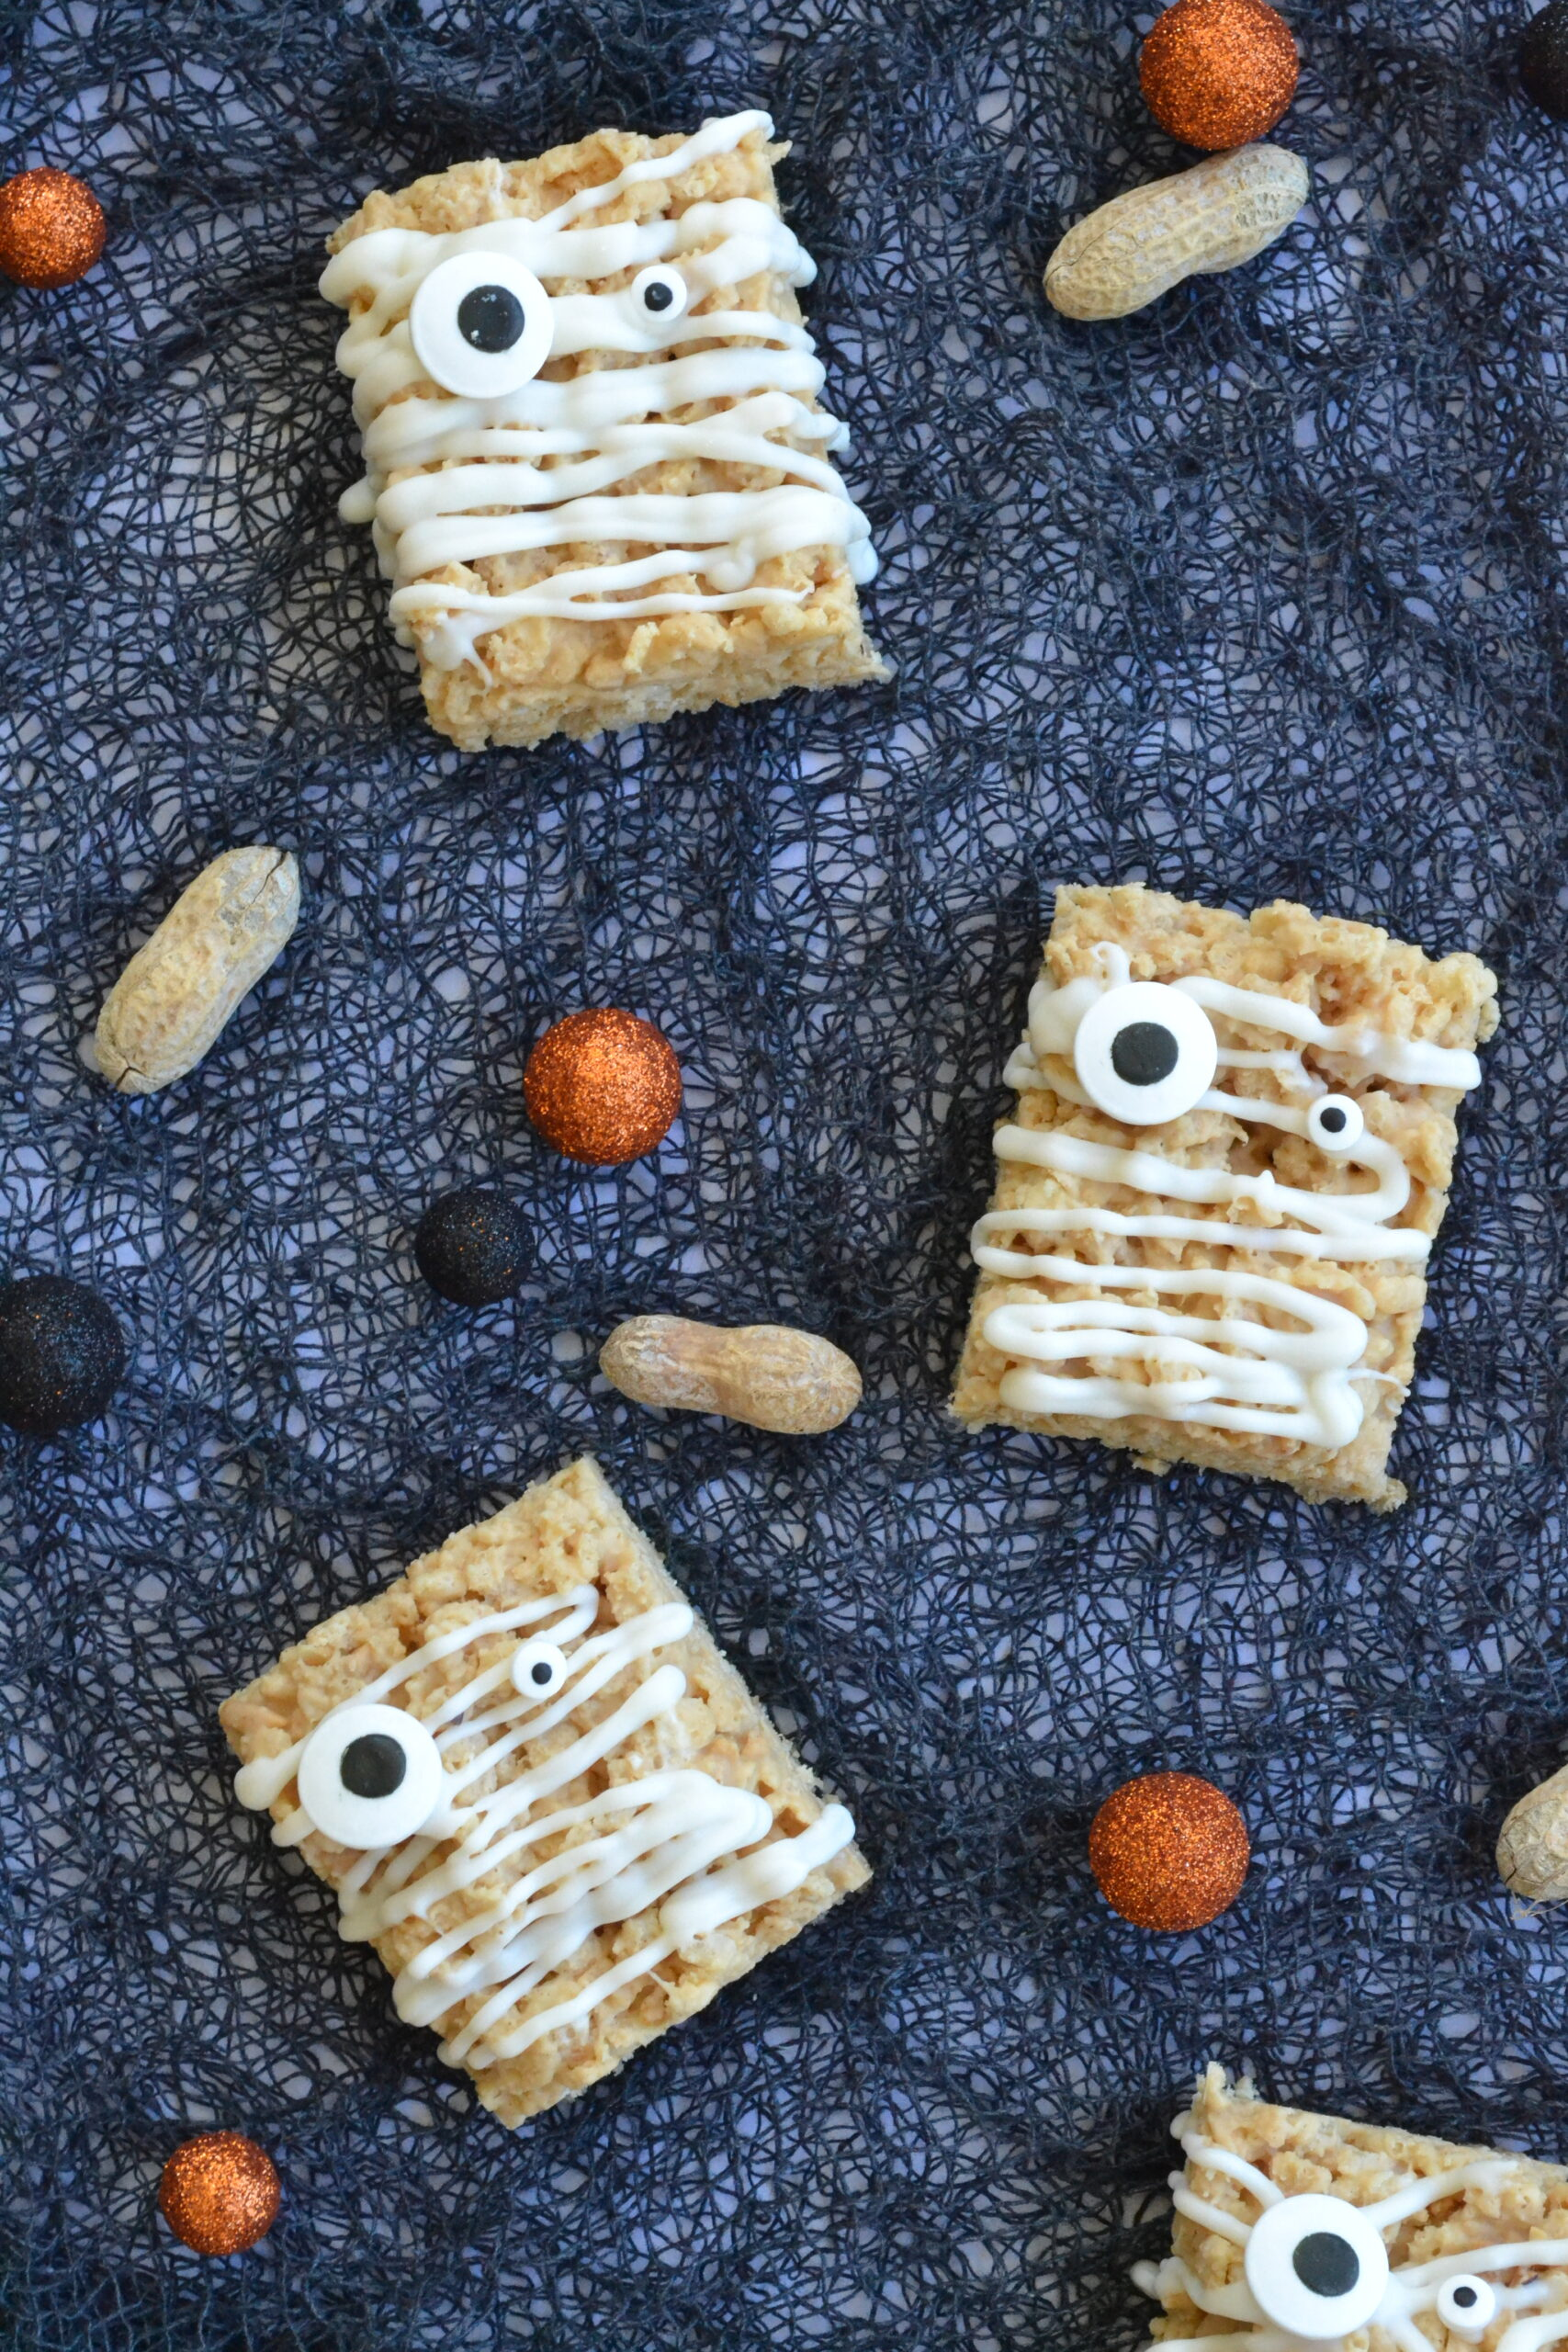 Mummy Peanut Butter Rice Krispie Treats